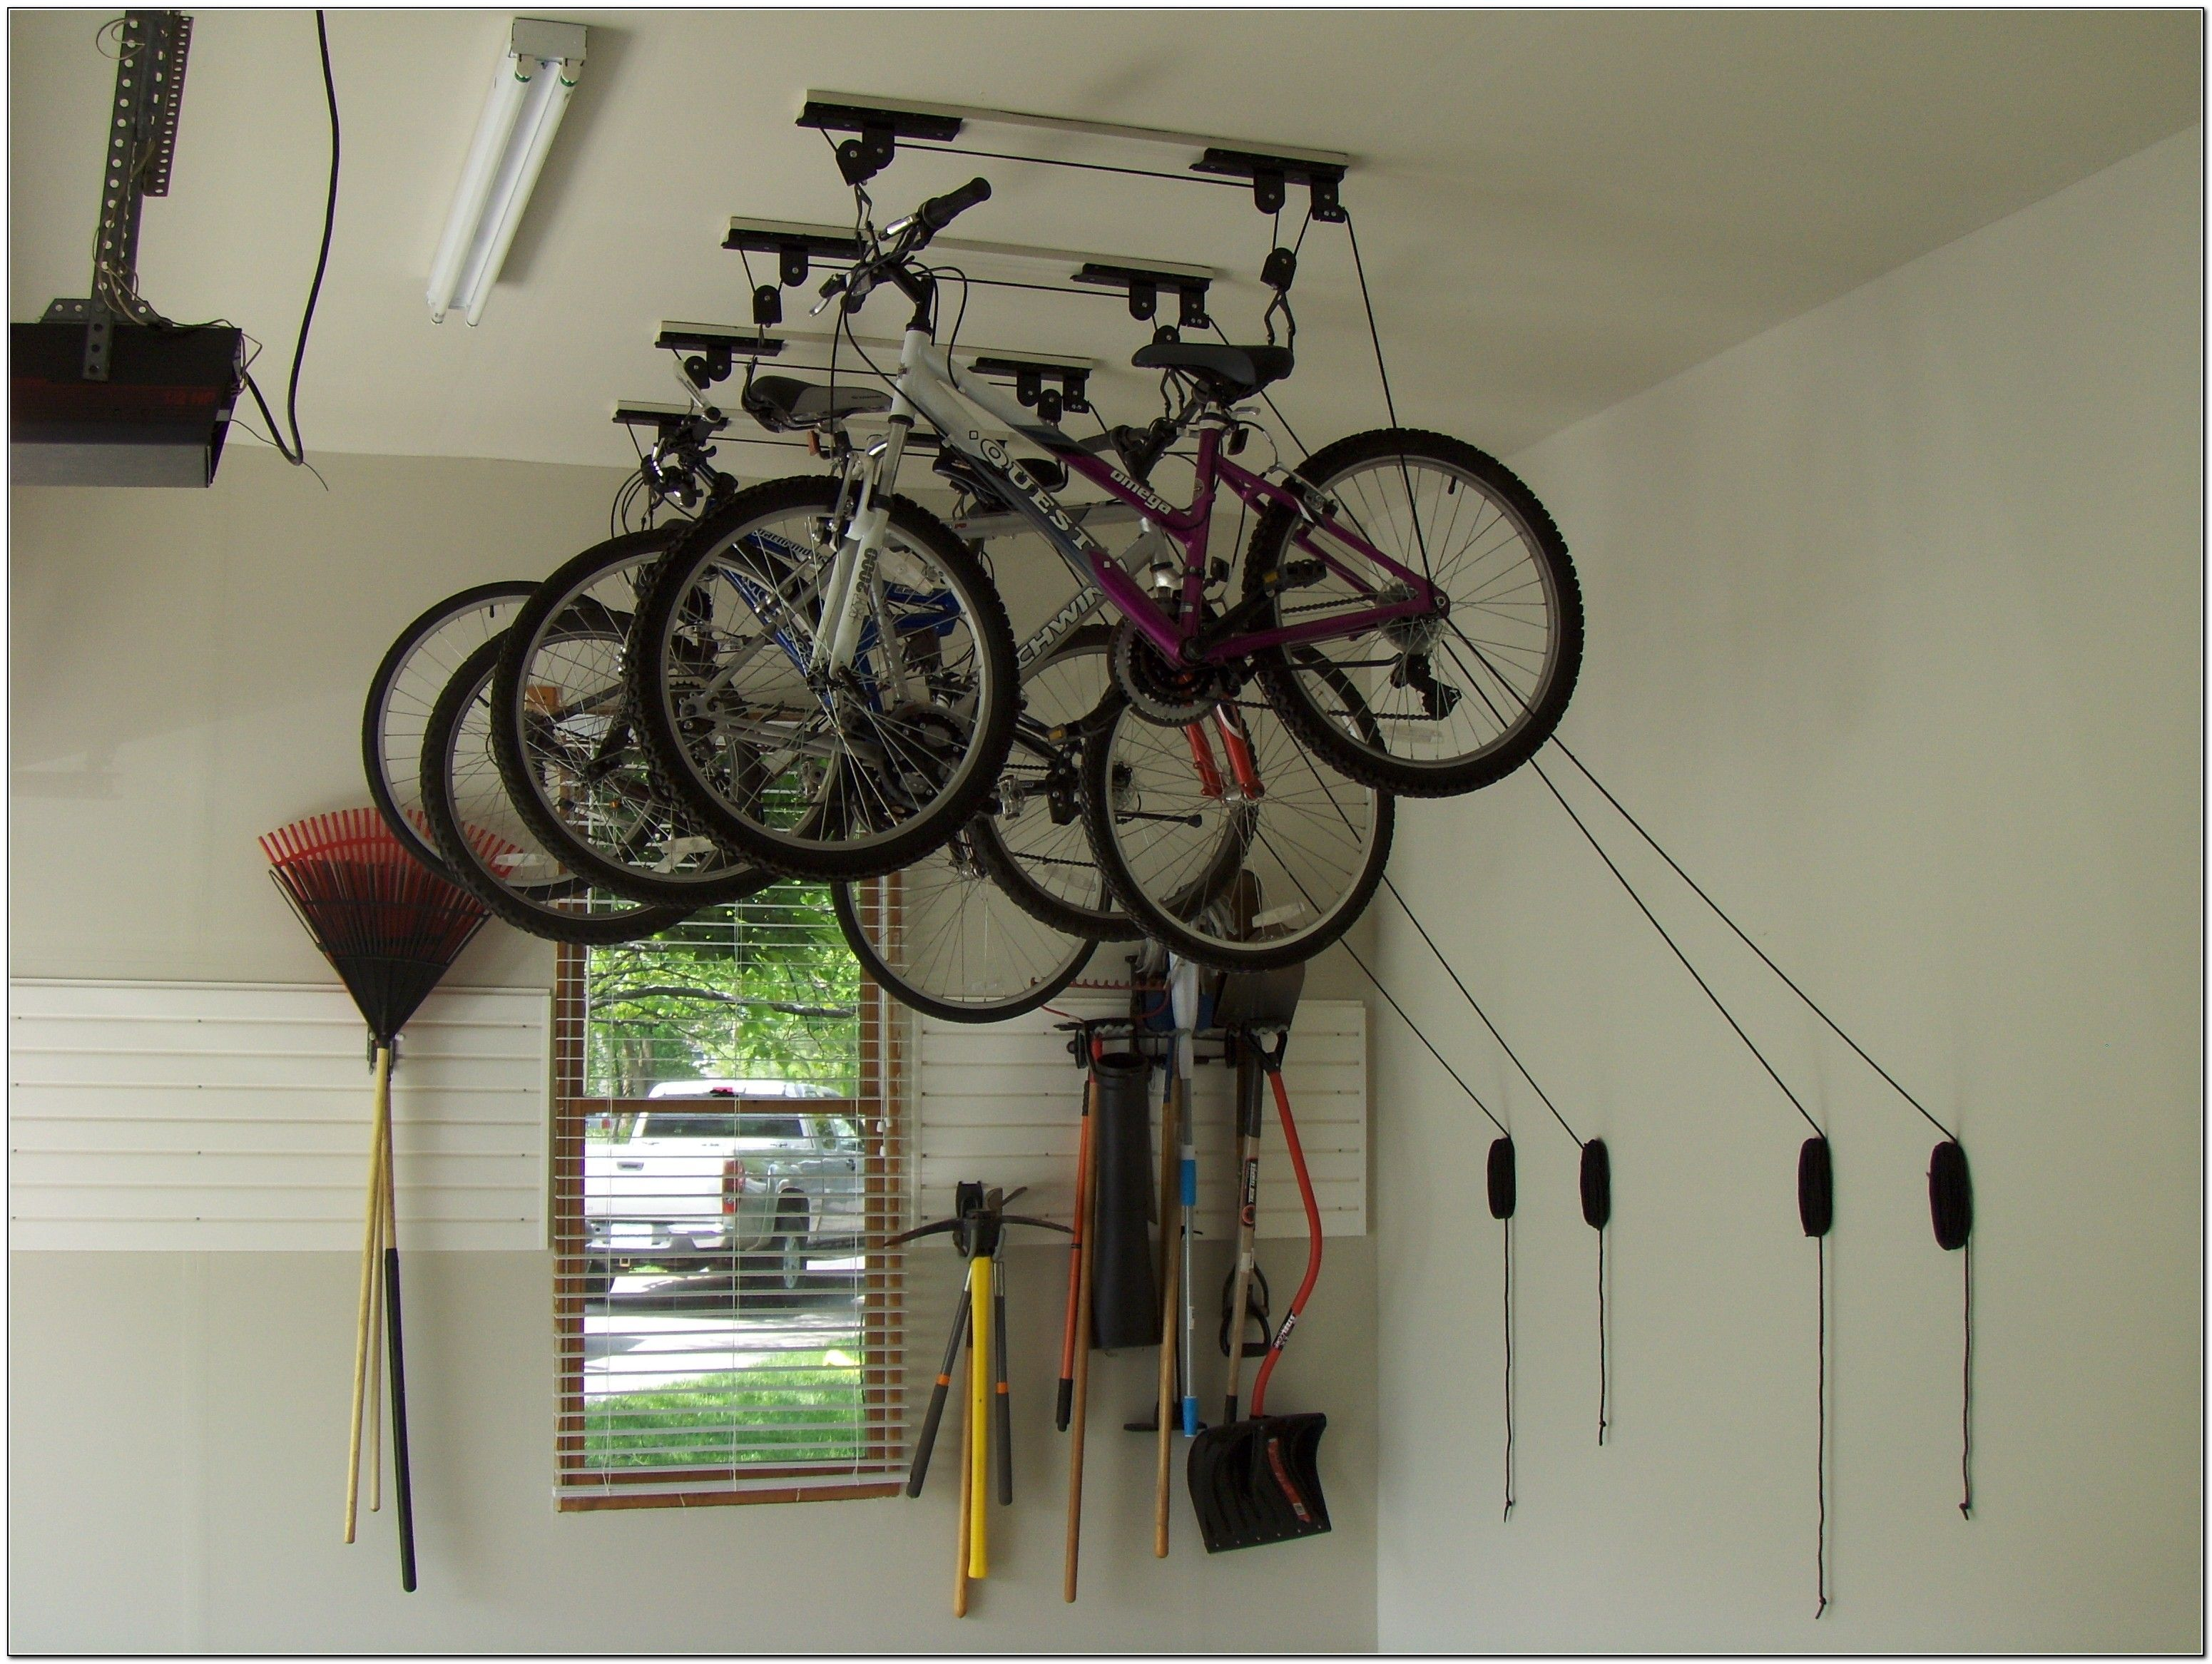 for popular bike pics stunning garage diy amazing in ceilings hang rack files and mount overhead a ideas storage easy without or ceiling your way style to